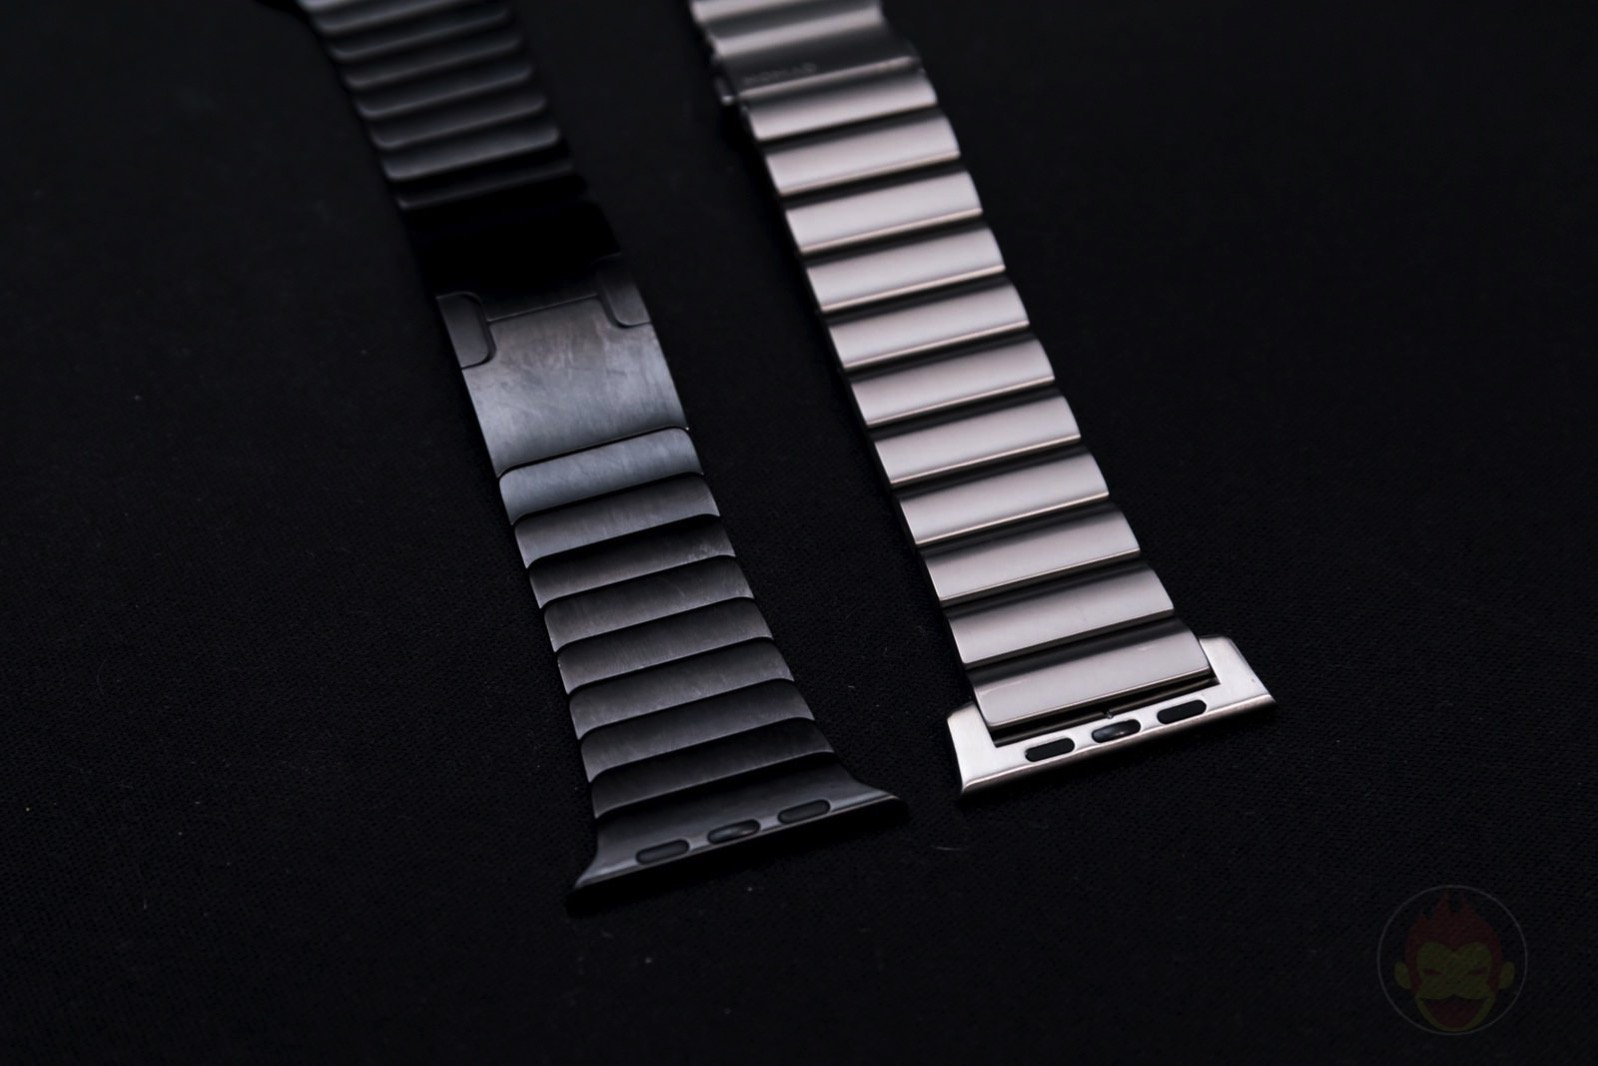 Apple-Watch-Nomad-Titanium-Band-Review-08.jpg